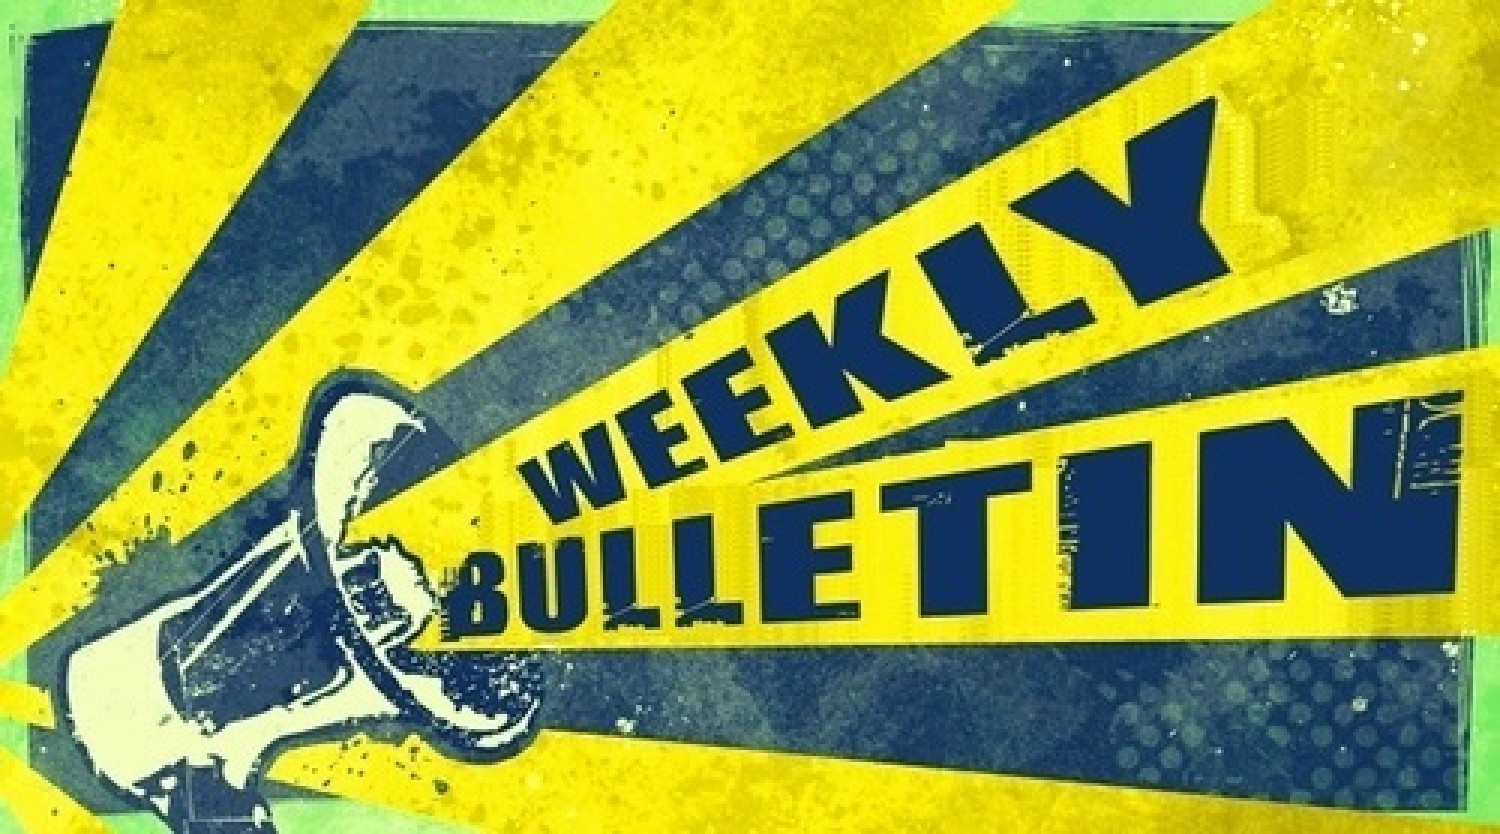 Weekly Bulletin July 5th